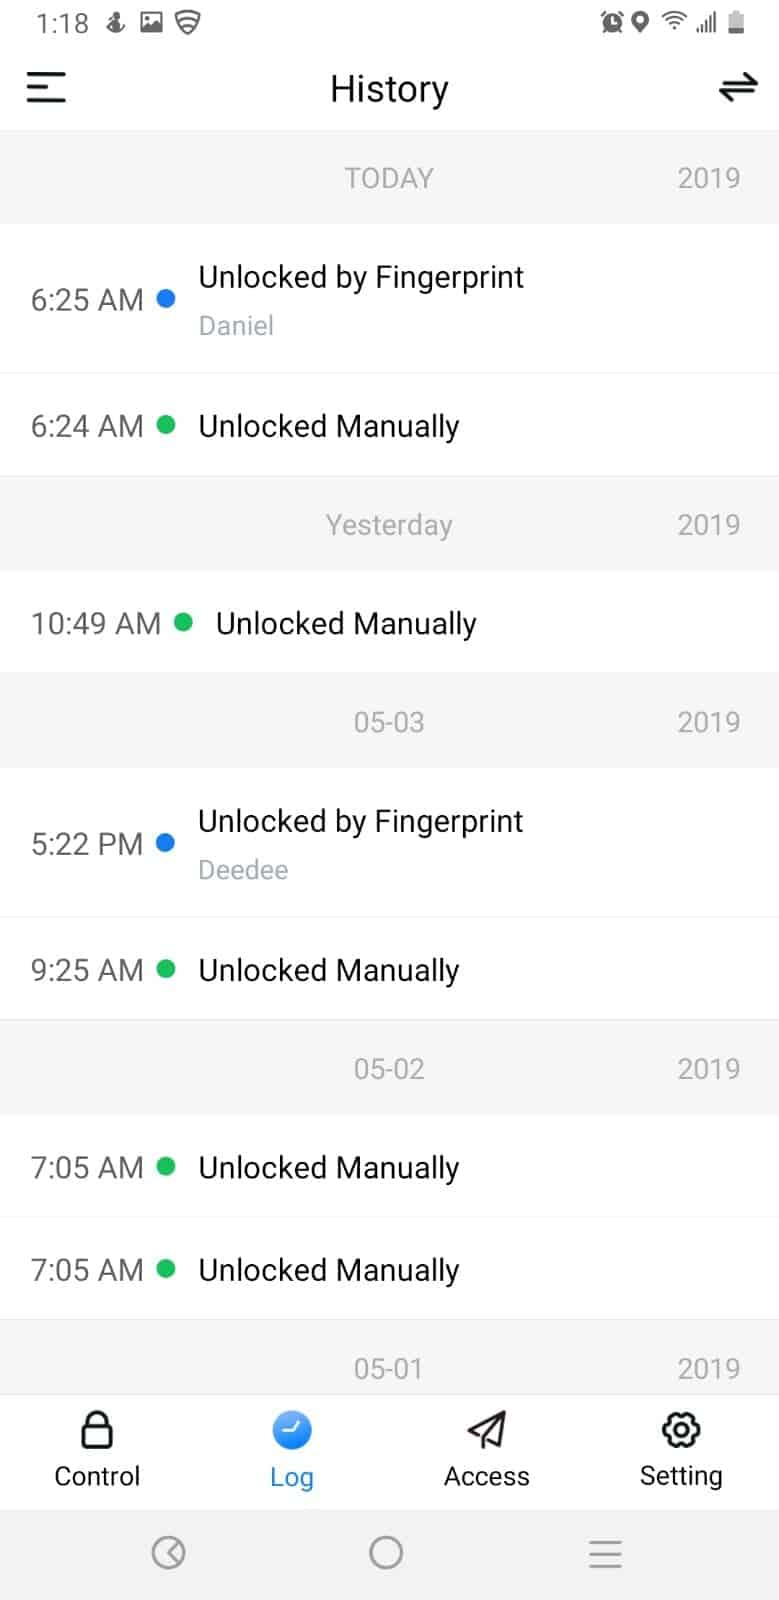 Lockly App Screenshots 03